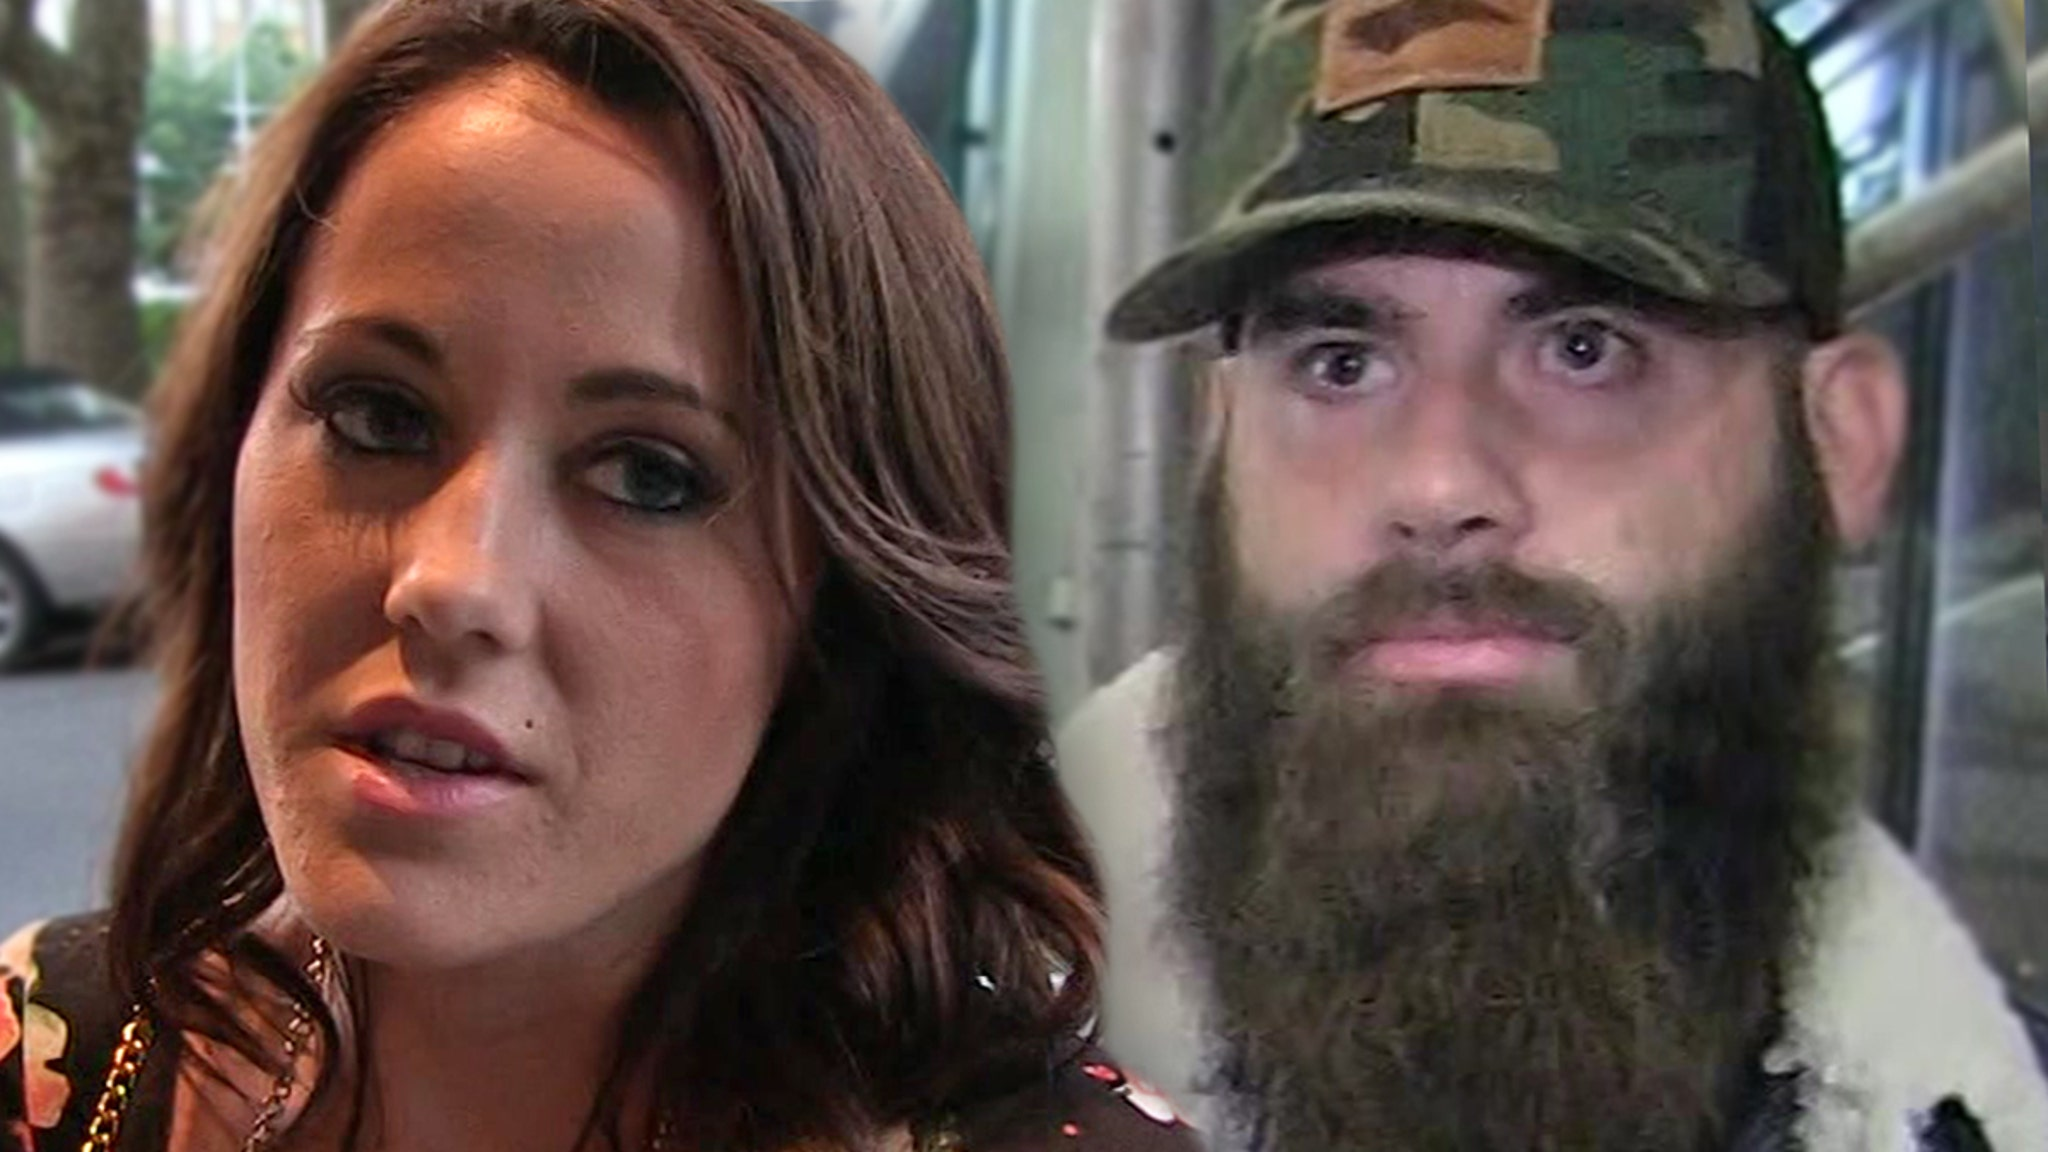 No Charges for Jenelle Evans' Husband David Eason in Dog Killing